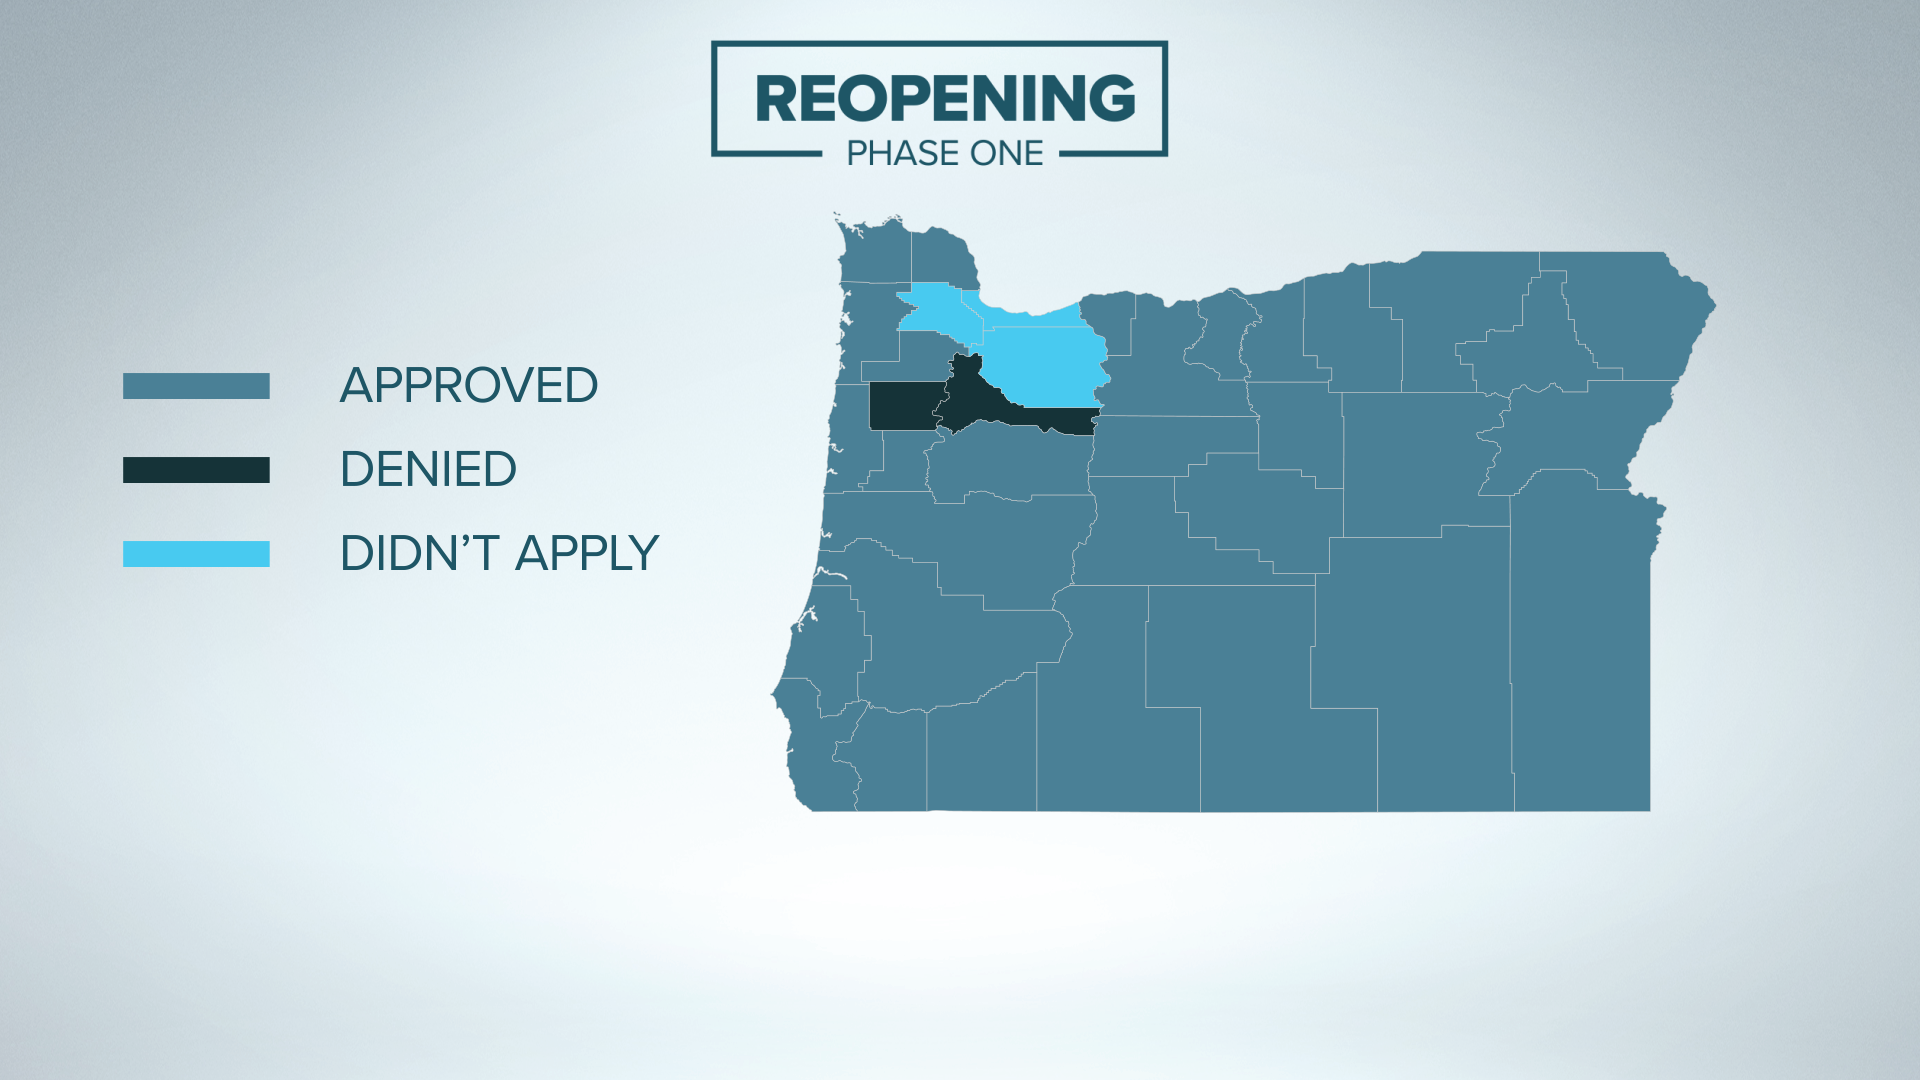 Map of Oregon Counties that may reopen in Phase 1. (credit KGW News)